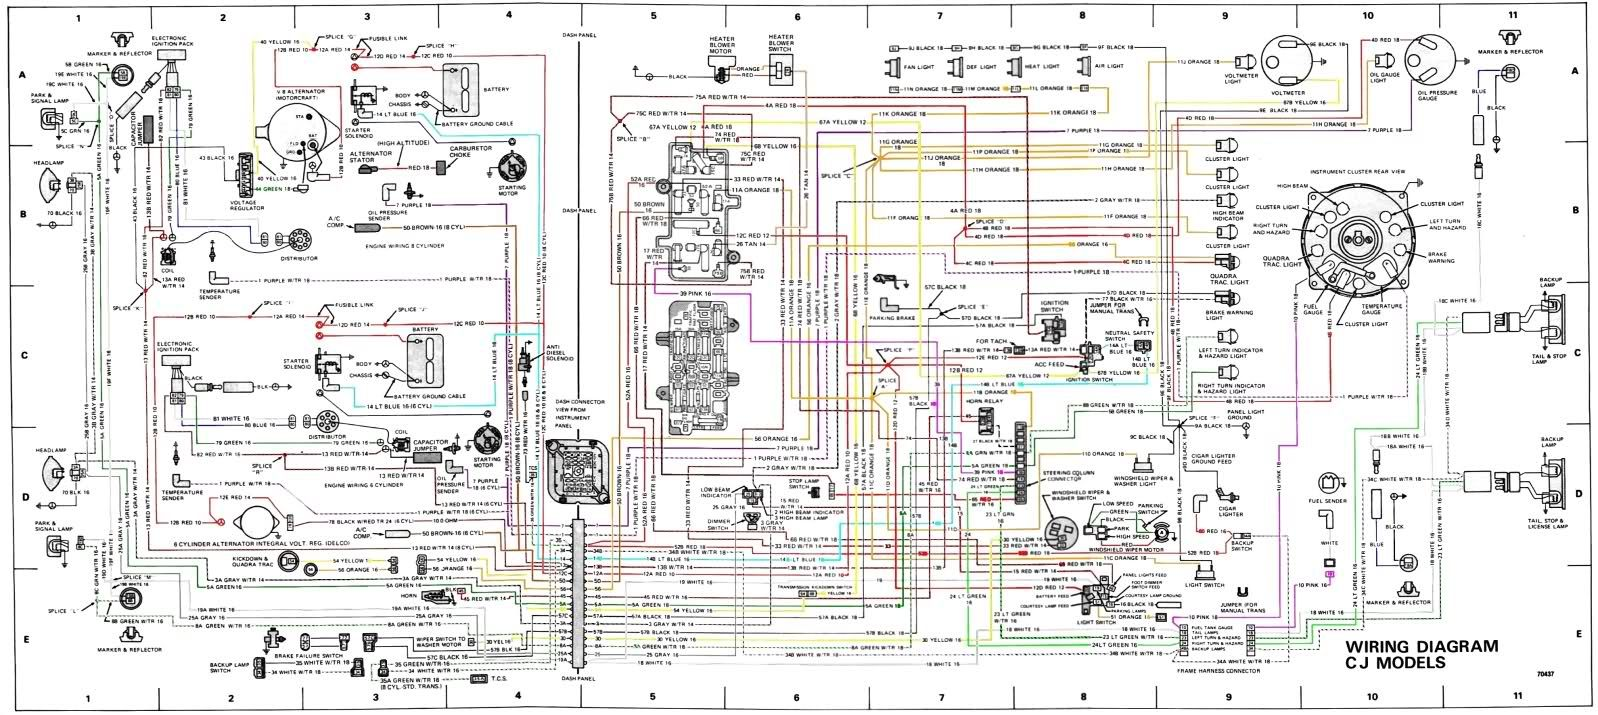 small resolution of 85 cj5 wiring diagram wiring diagram used 85 cj5 wiring diagram